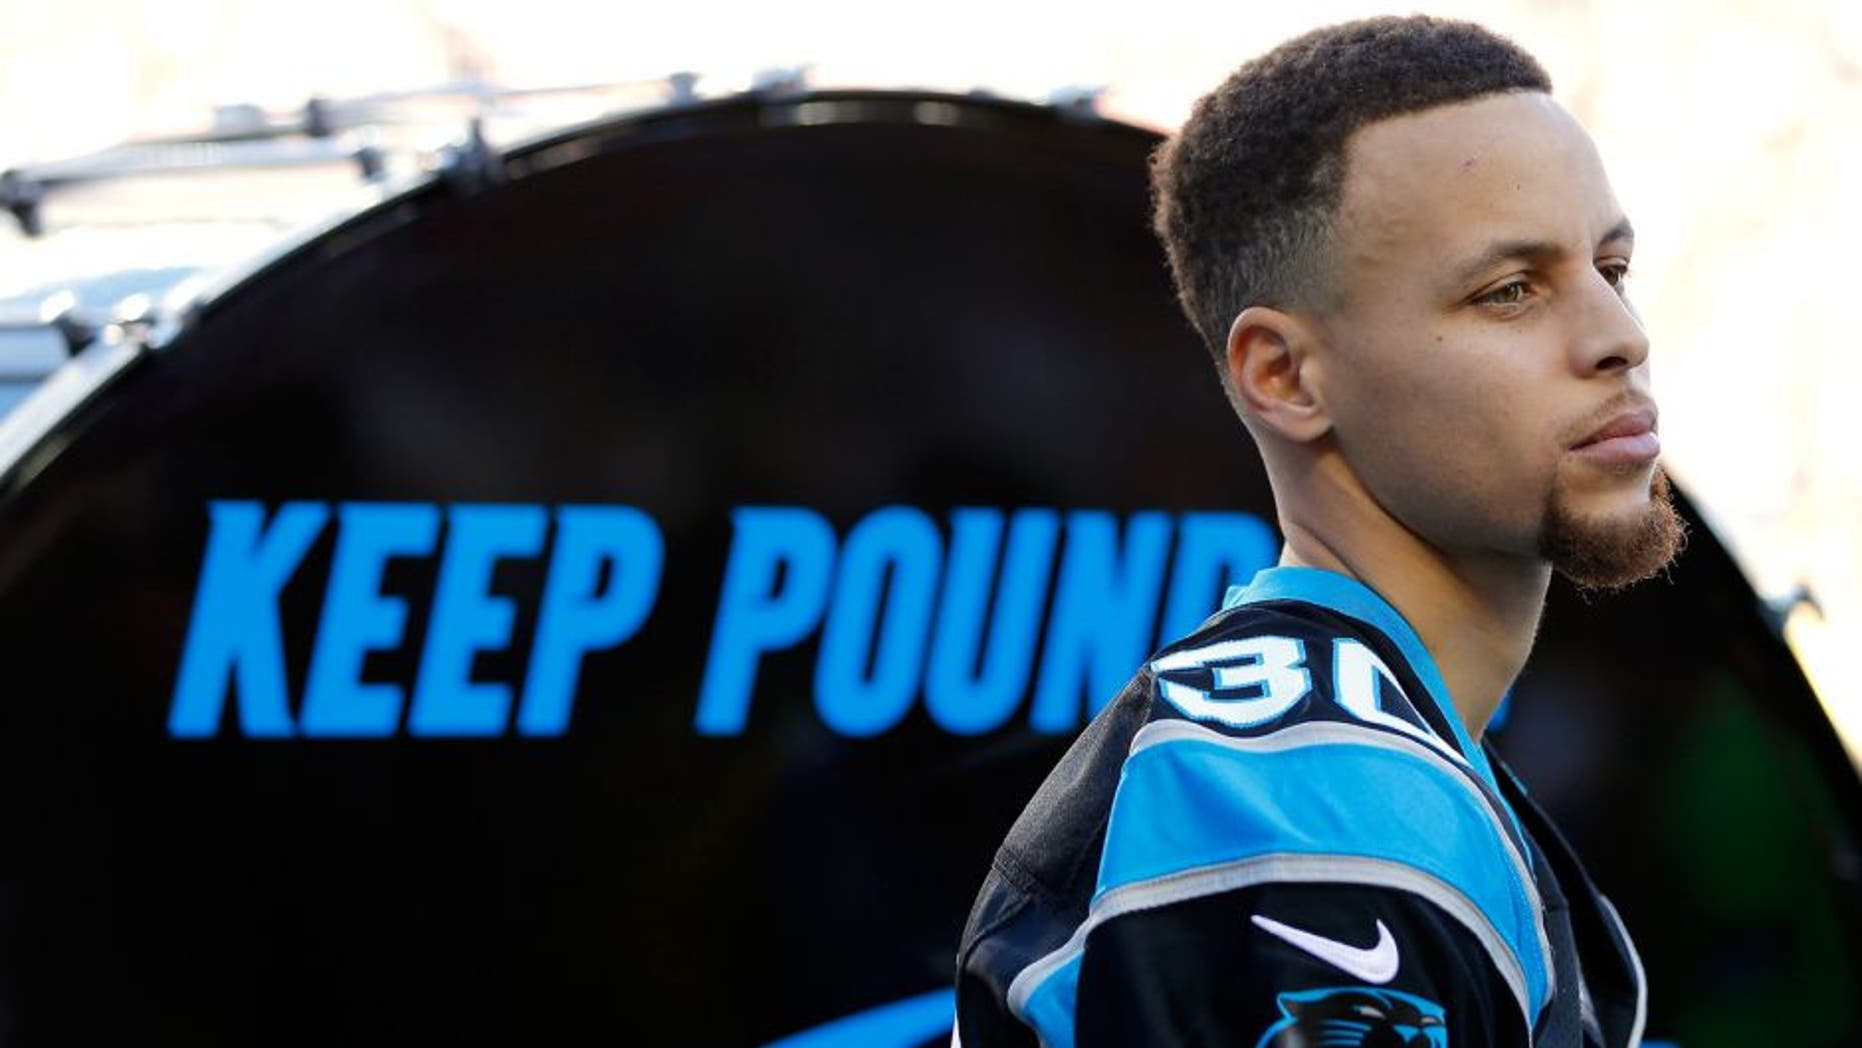 """SANTA CLARA, CA - FEBRUARY 07: Stephen Curry of the Golden State Warriors prepares to hit the """"Keep Pounding"""" drum for the Carolina Panthers prior to Super Bowl 50 against the Denver Broncos at Levi's Stadium on February 7, 2016 in Santa Clara, California. (Photo by Kevin C. Cox/Getty Images)"""